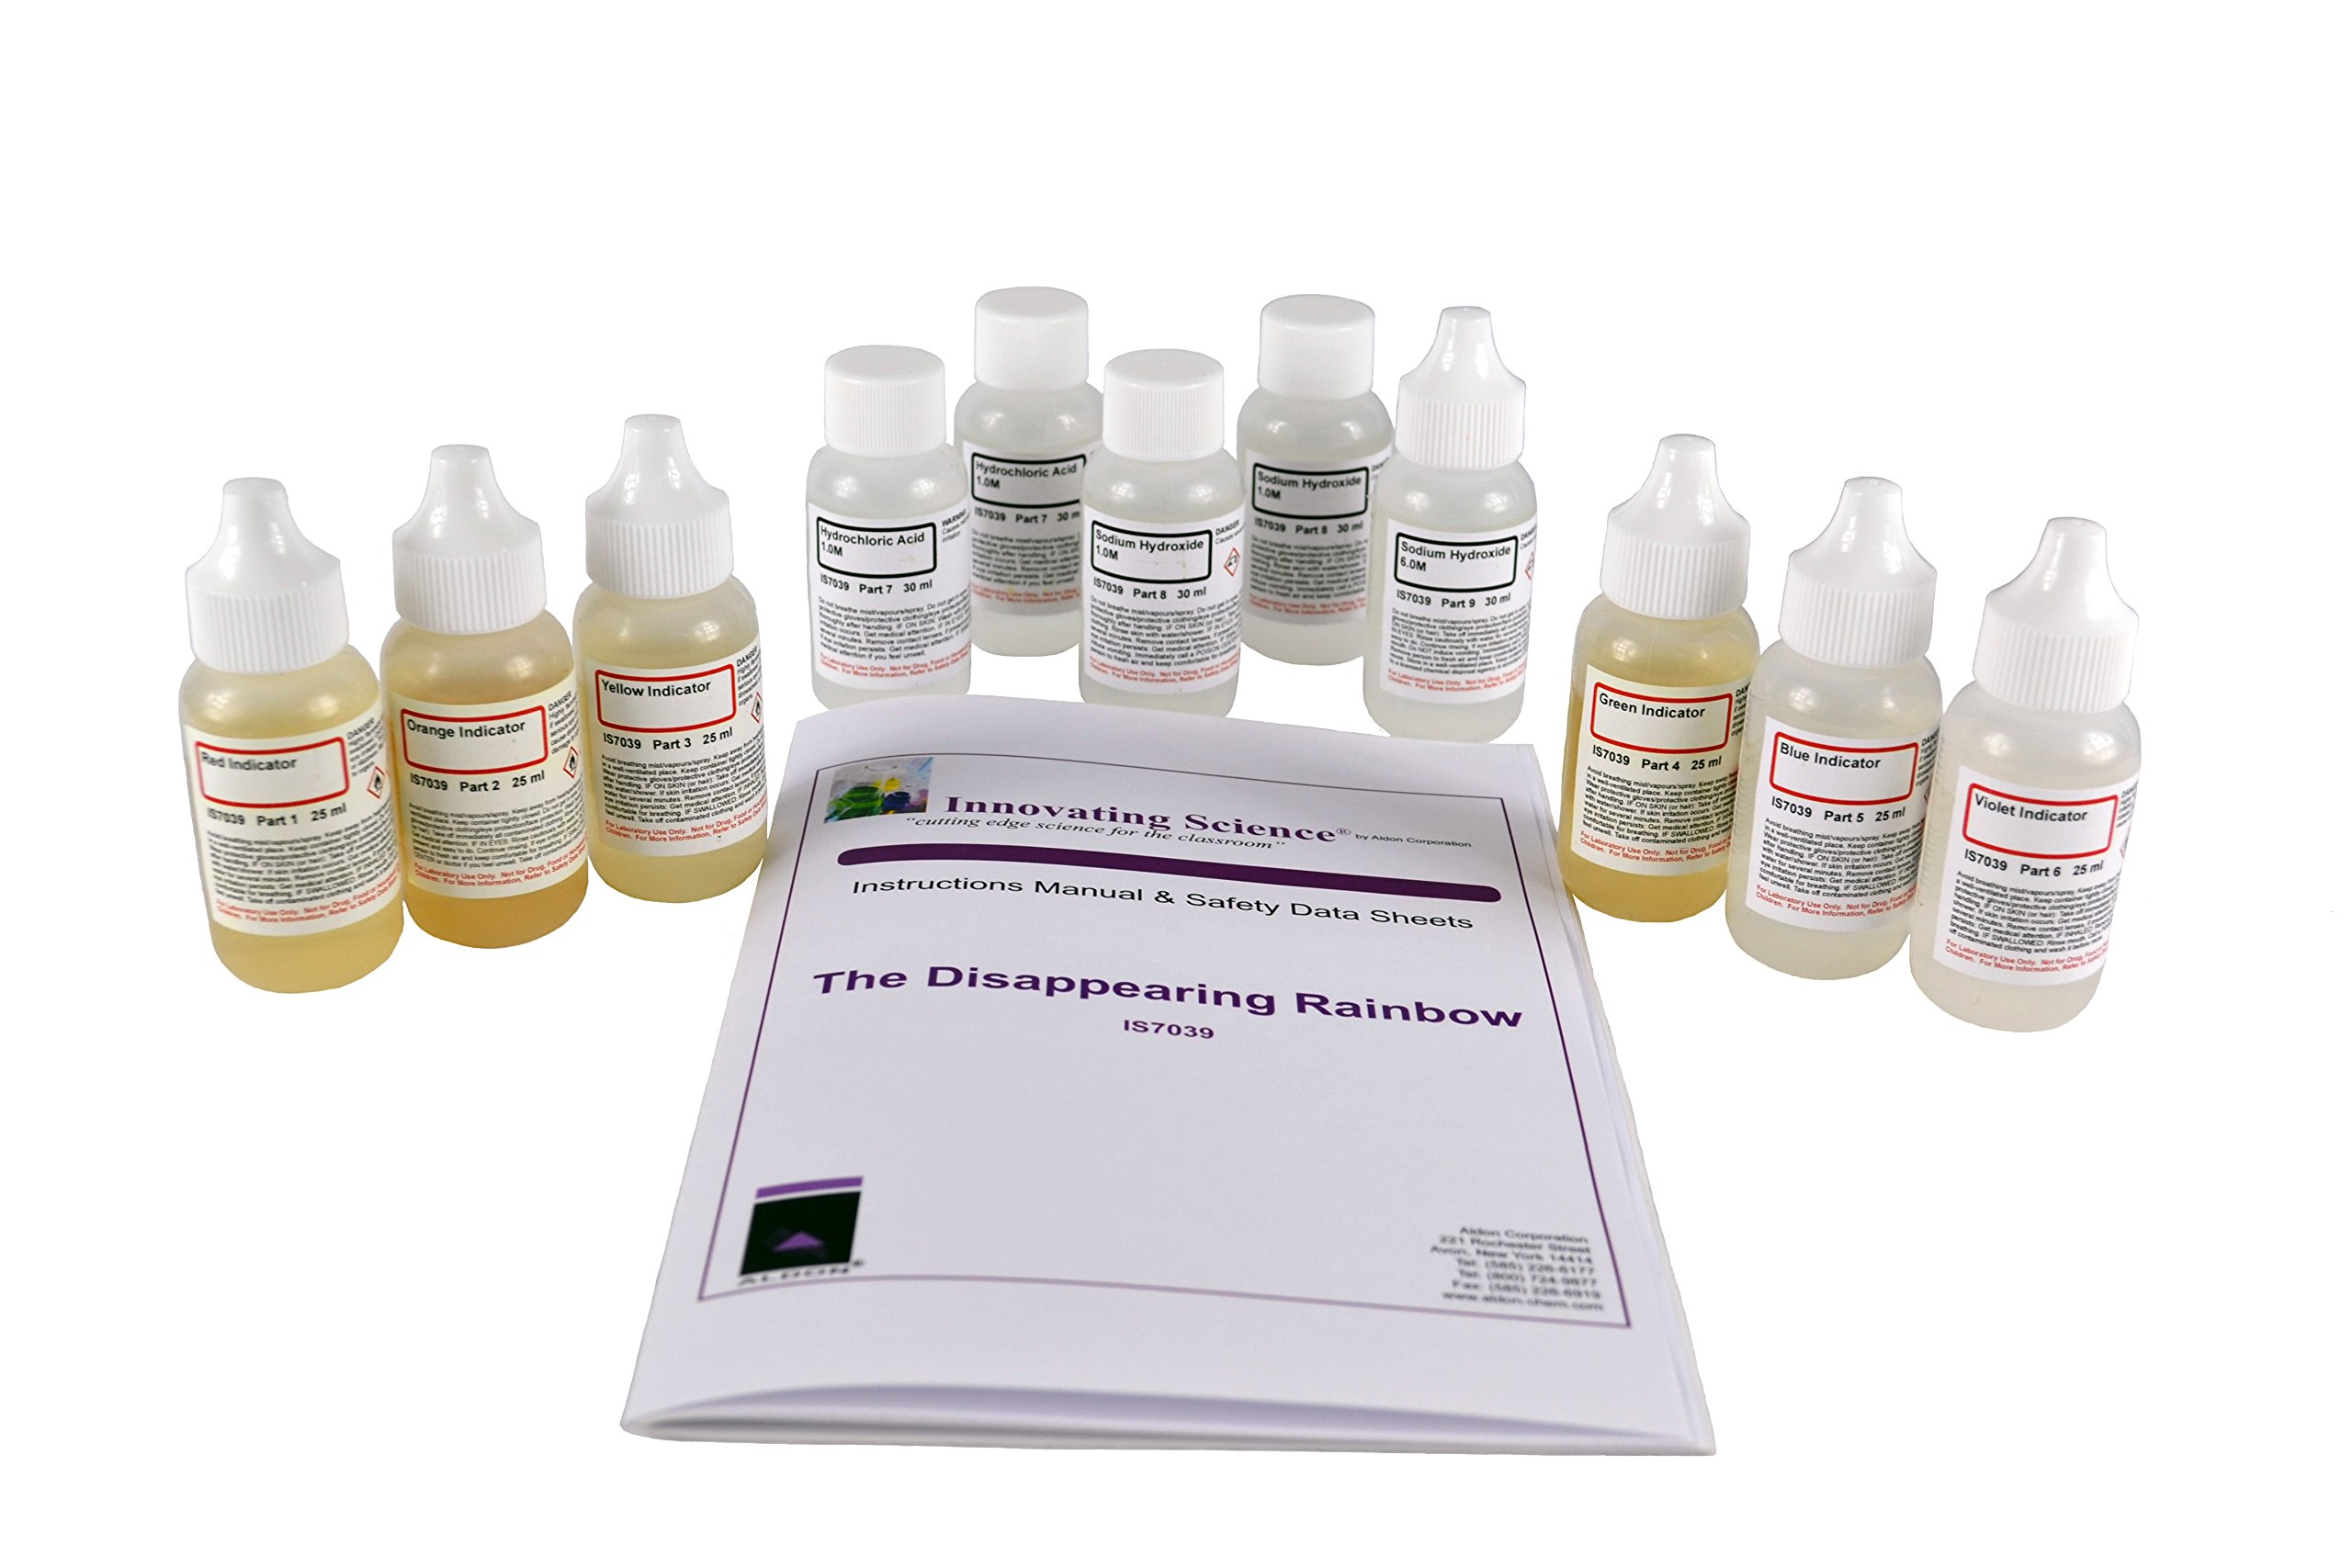 Innovating Science - Disappearing Rainbow Chemistry Demo Kit